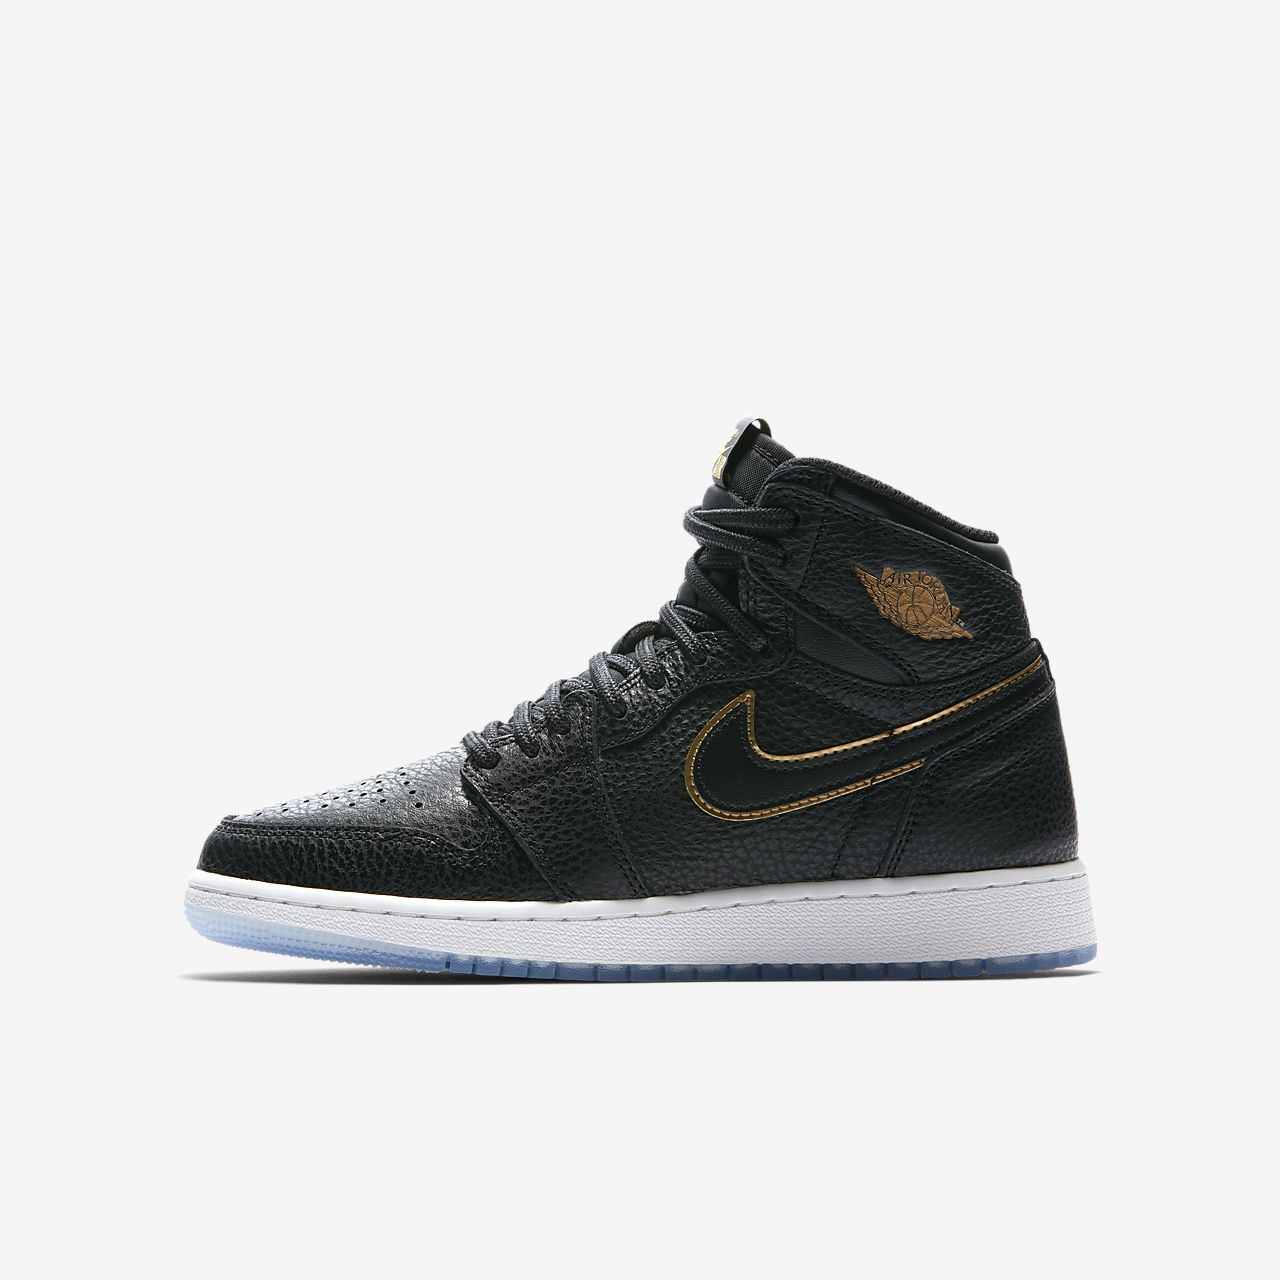 jordan retro 1 high nz